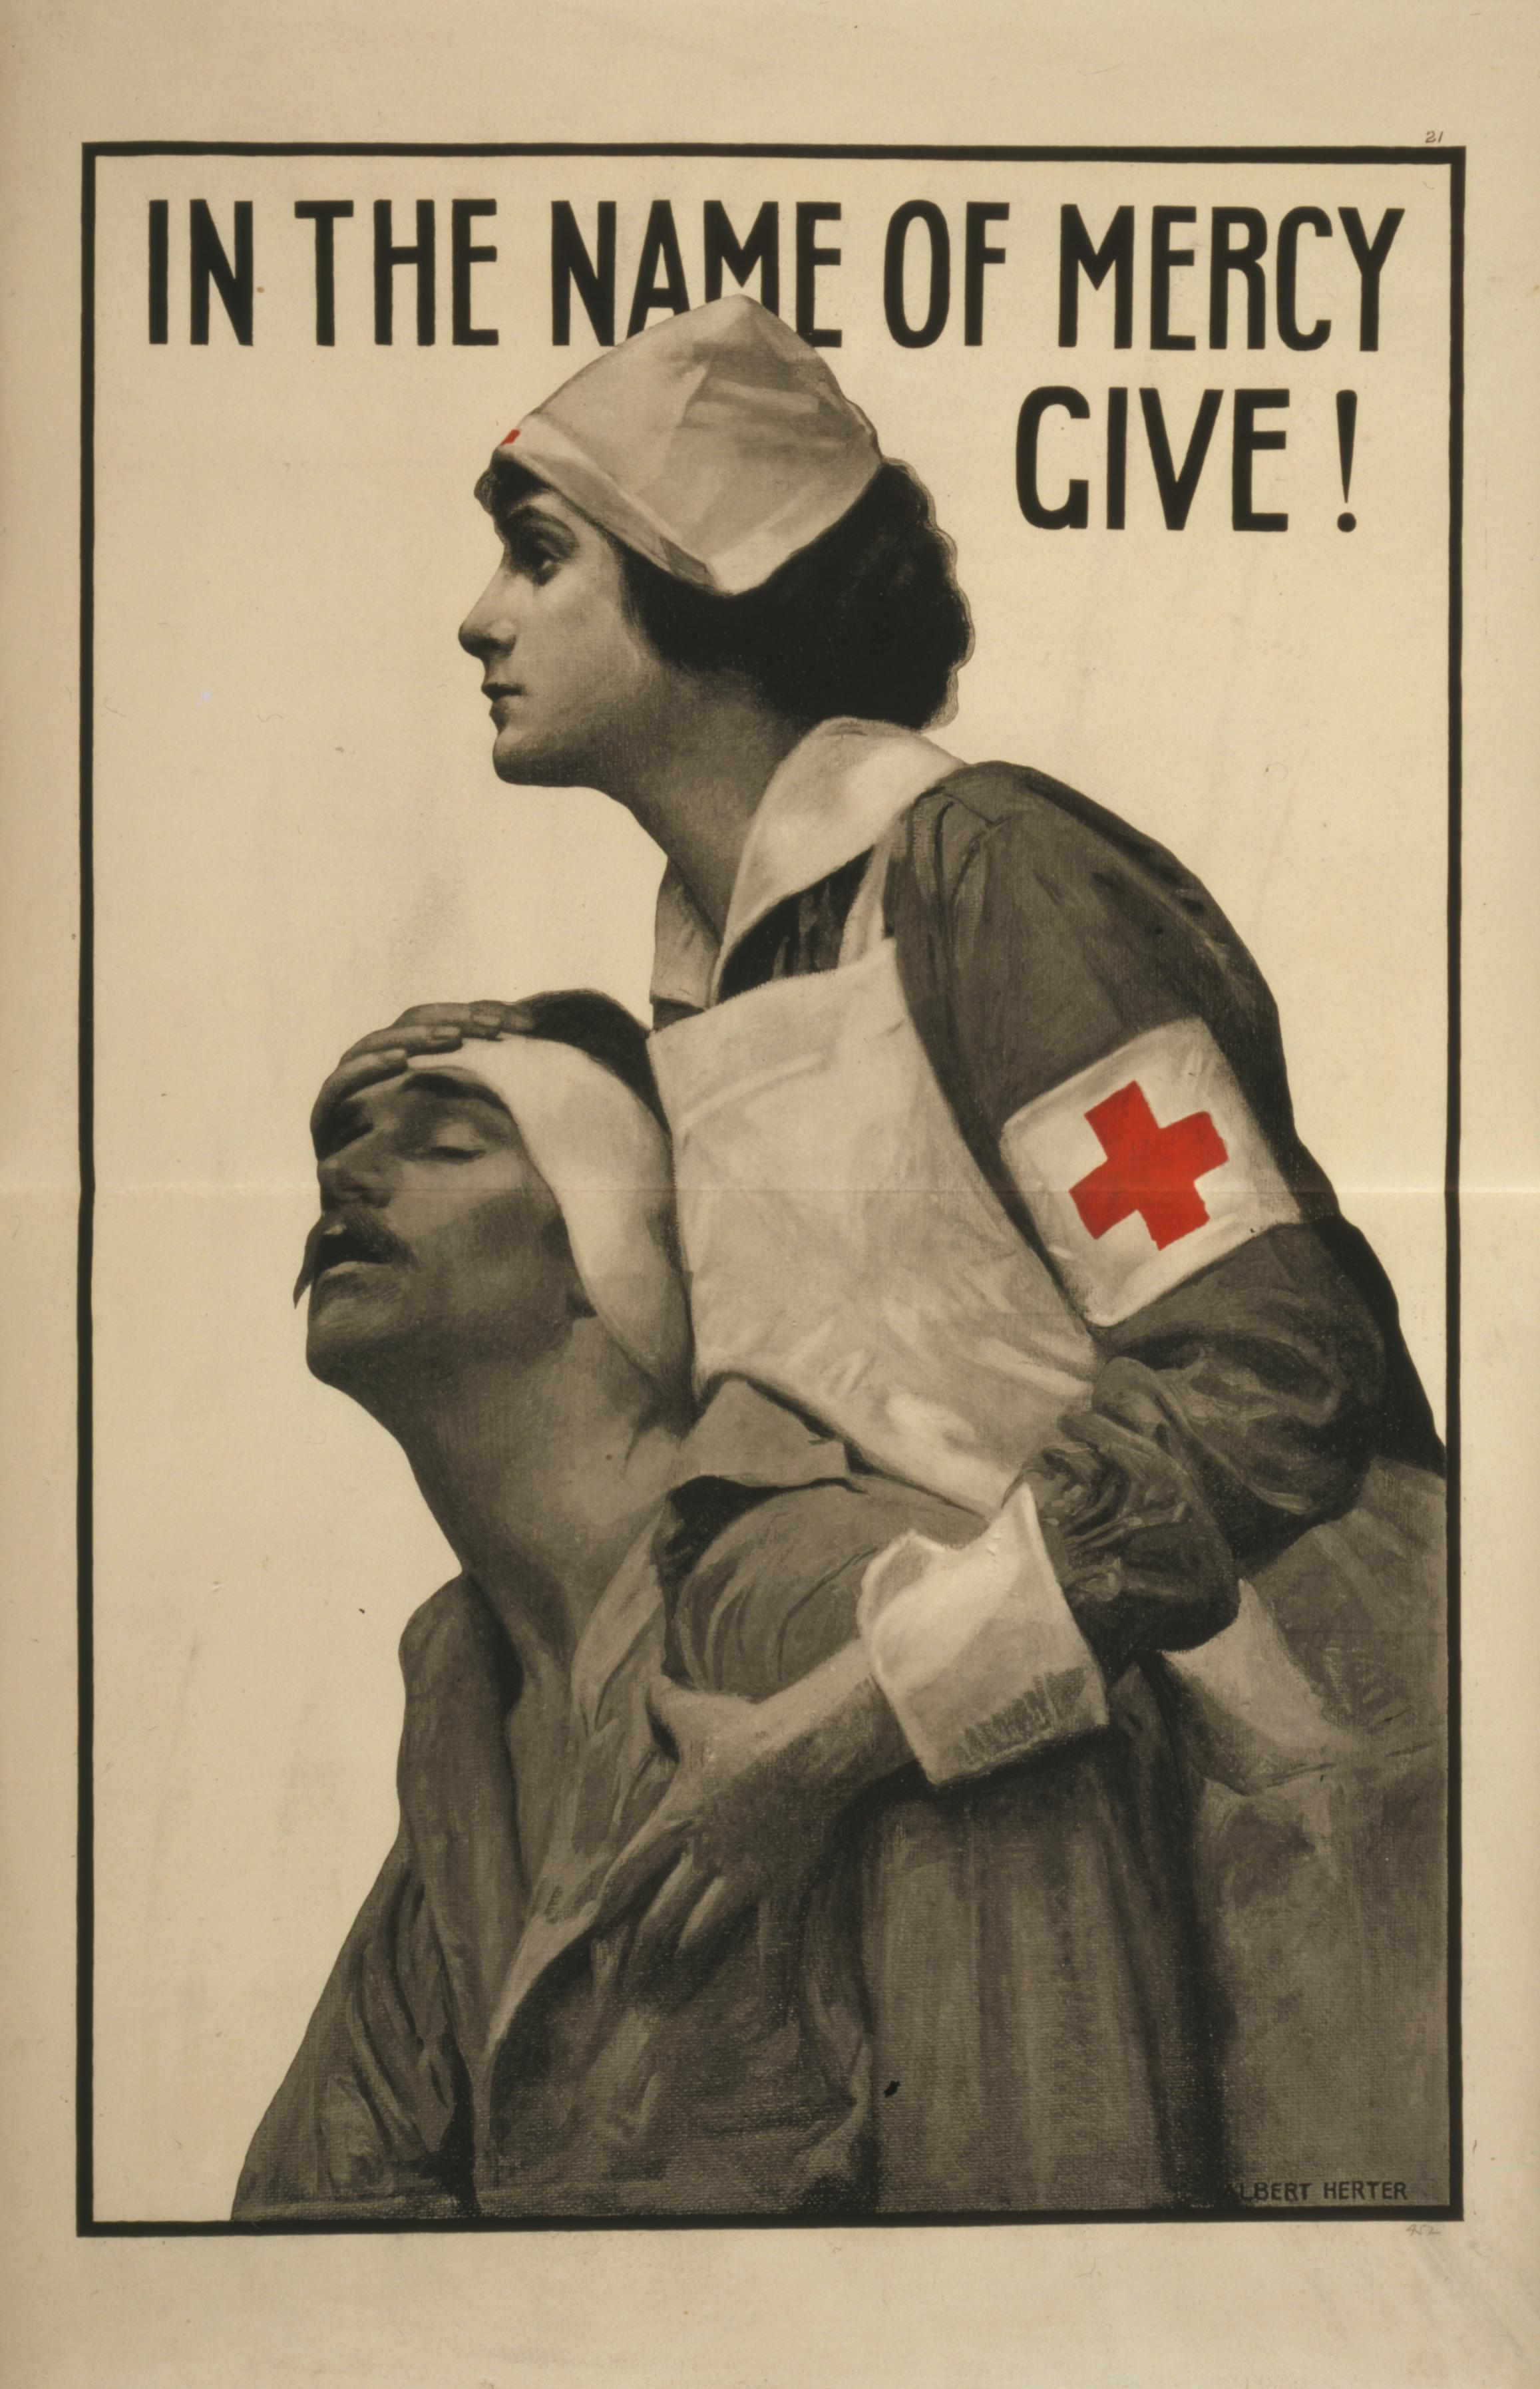 American Red Cross image